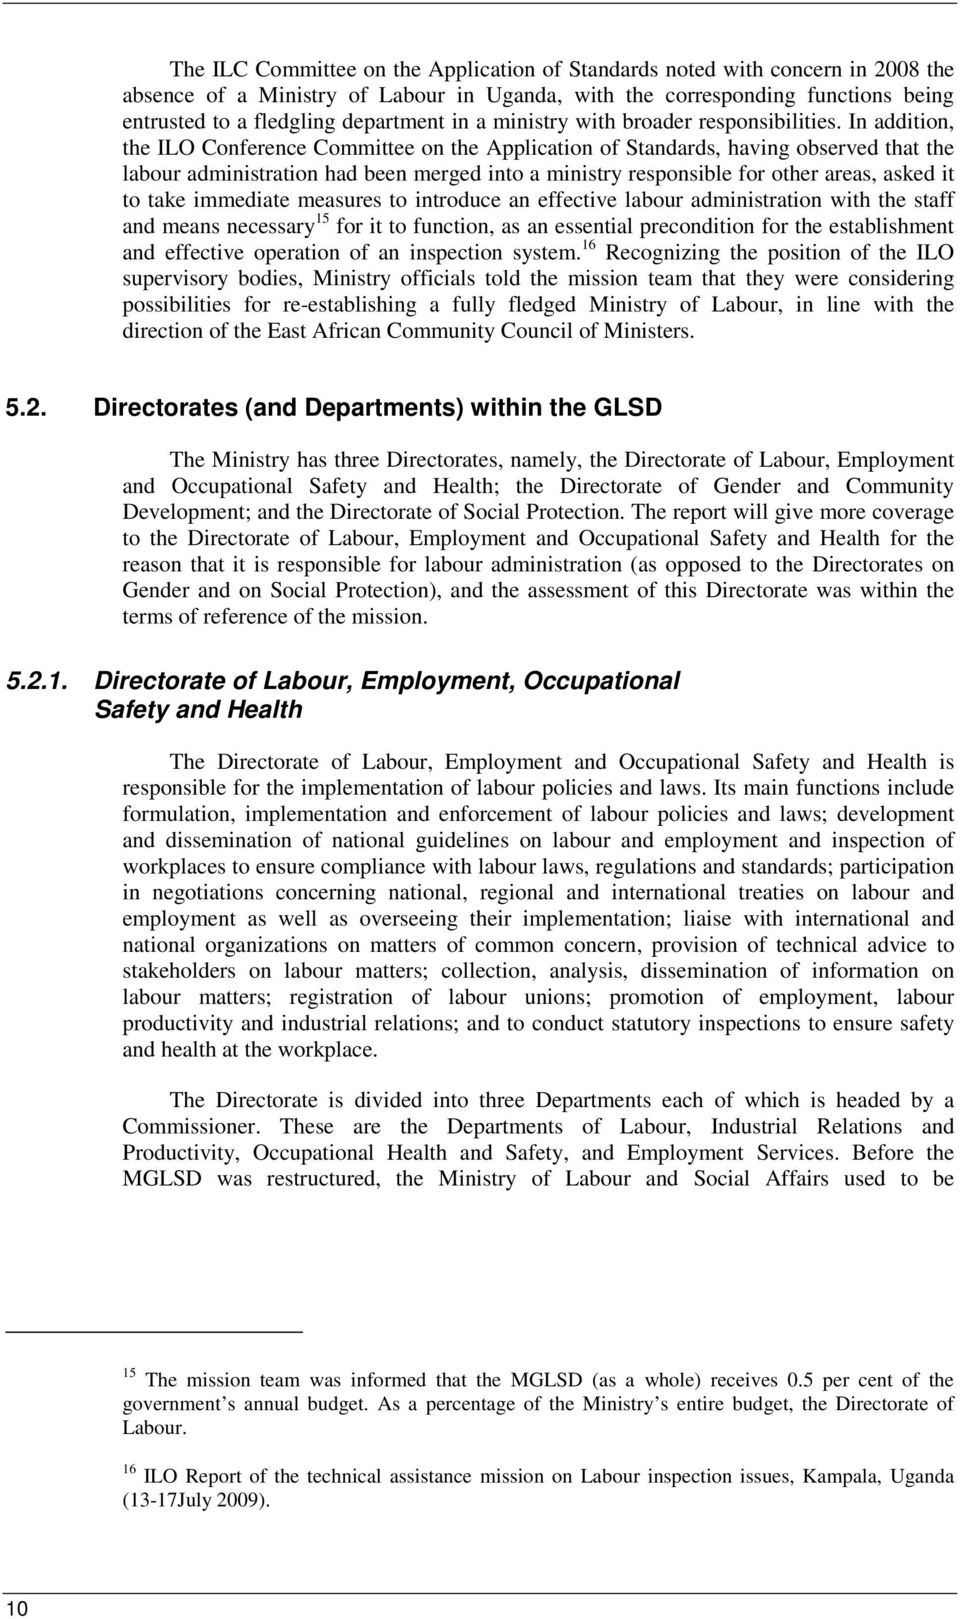 In addition, the ILO Conference Committee on the Application of Standards, having observed that the labour administration had been merged into a ministry responsible for other areas, asked it to take